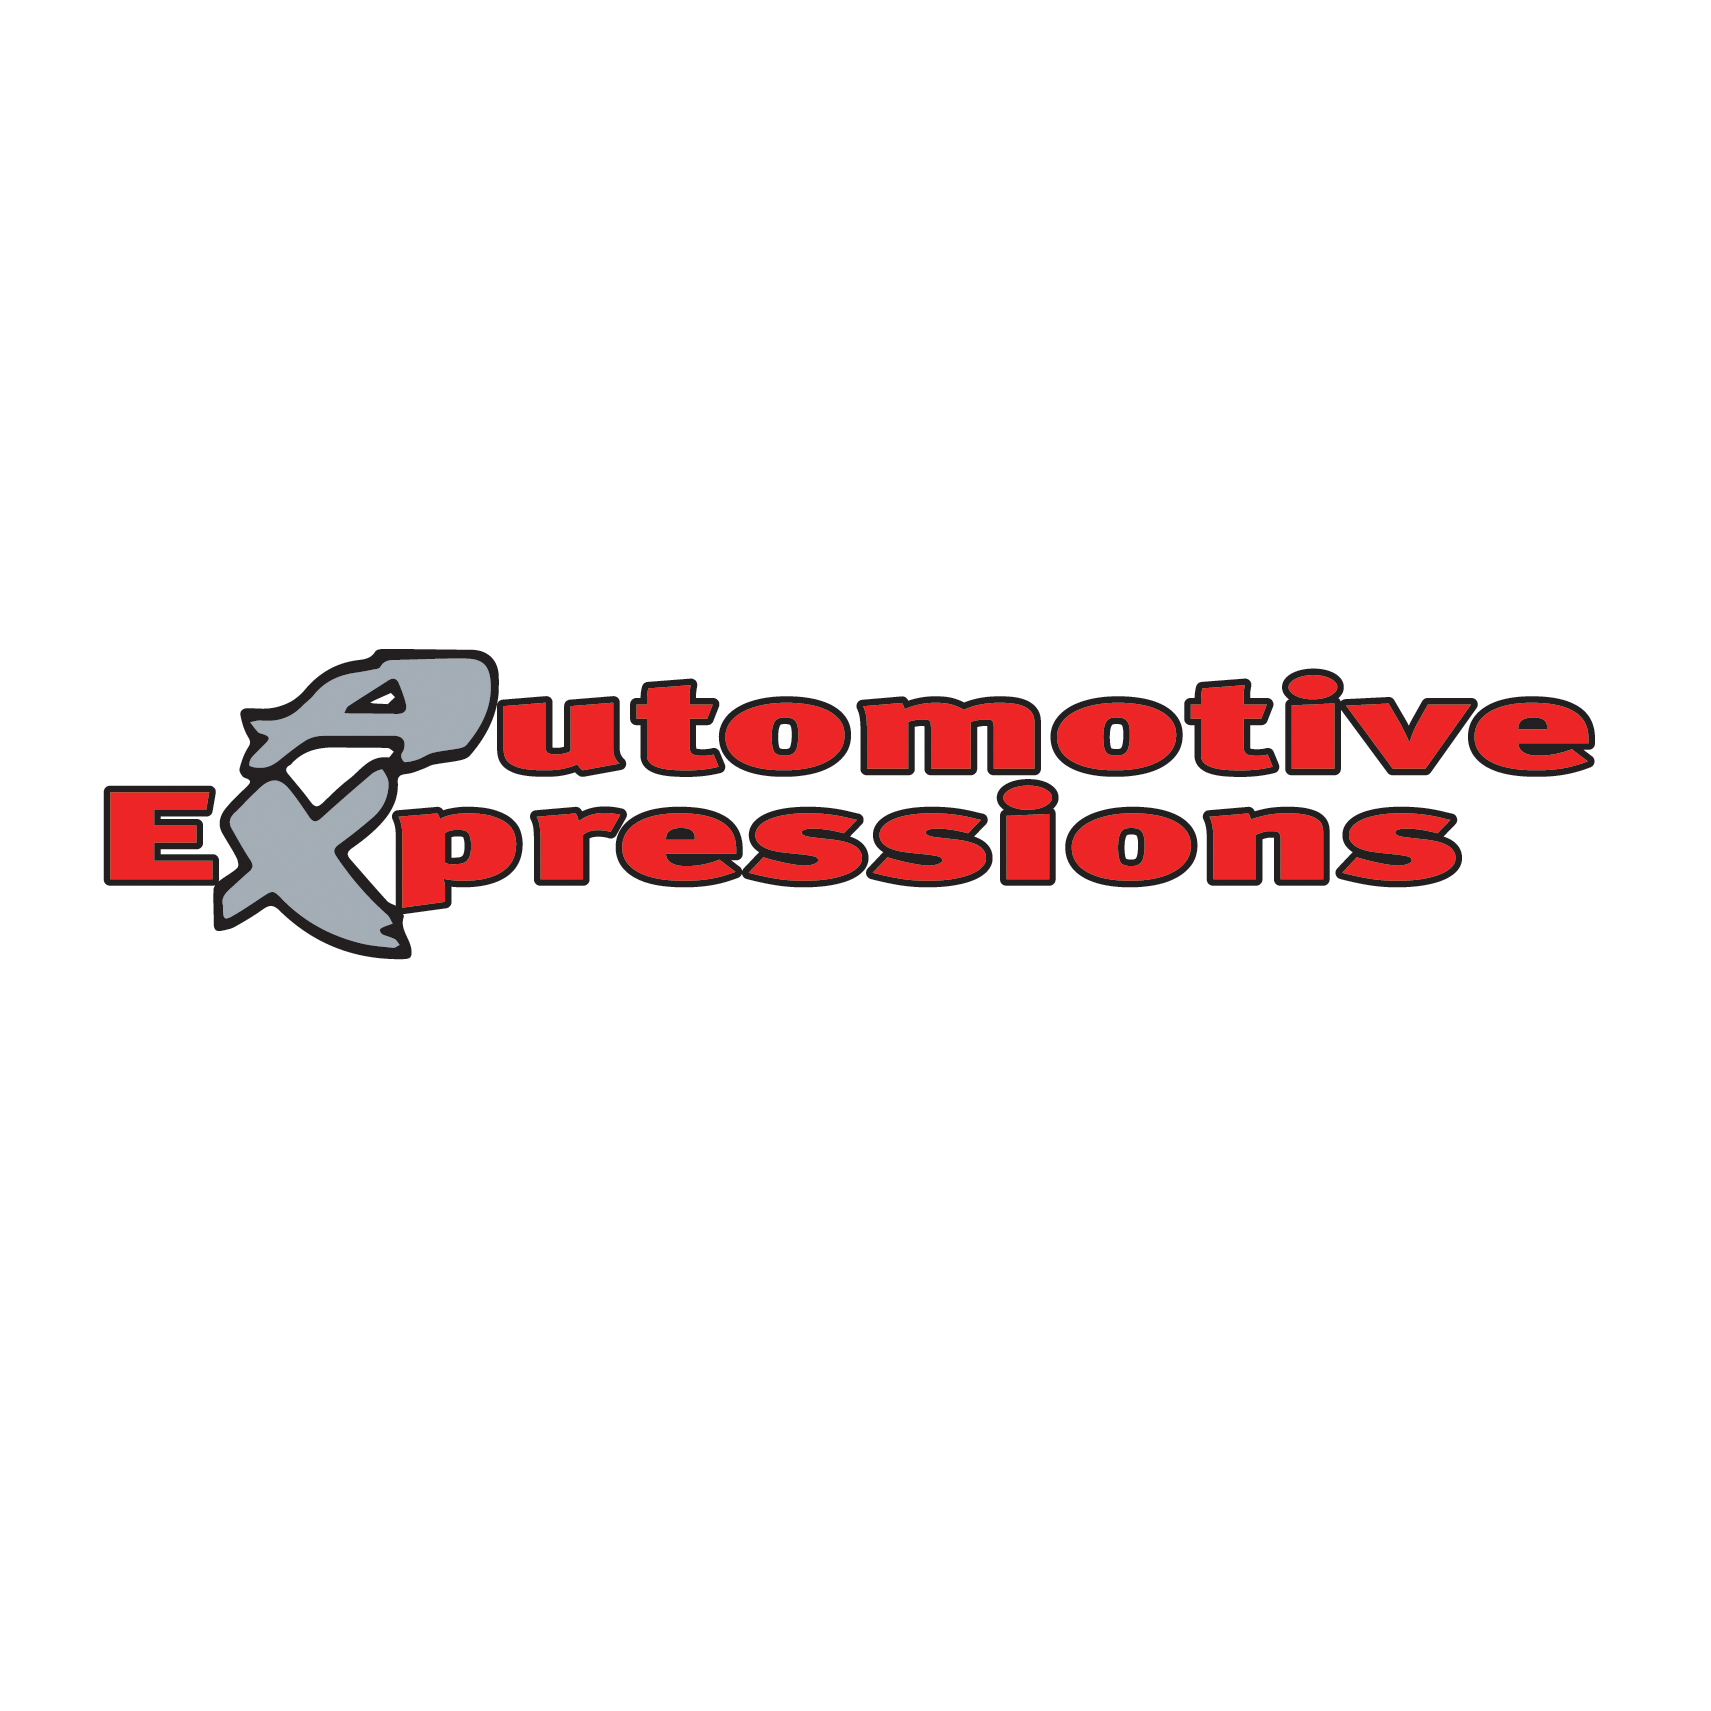 Automotive Expressions